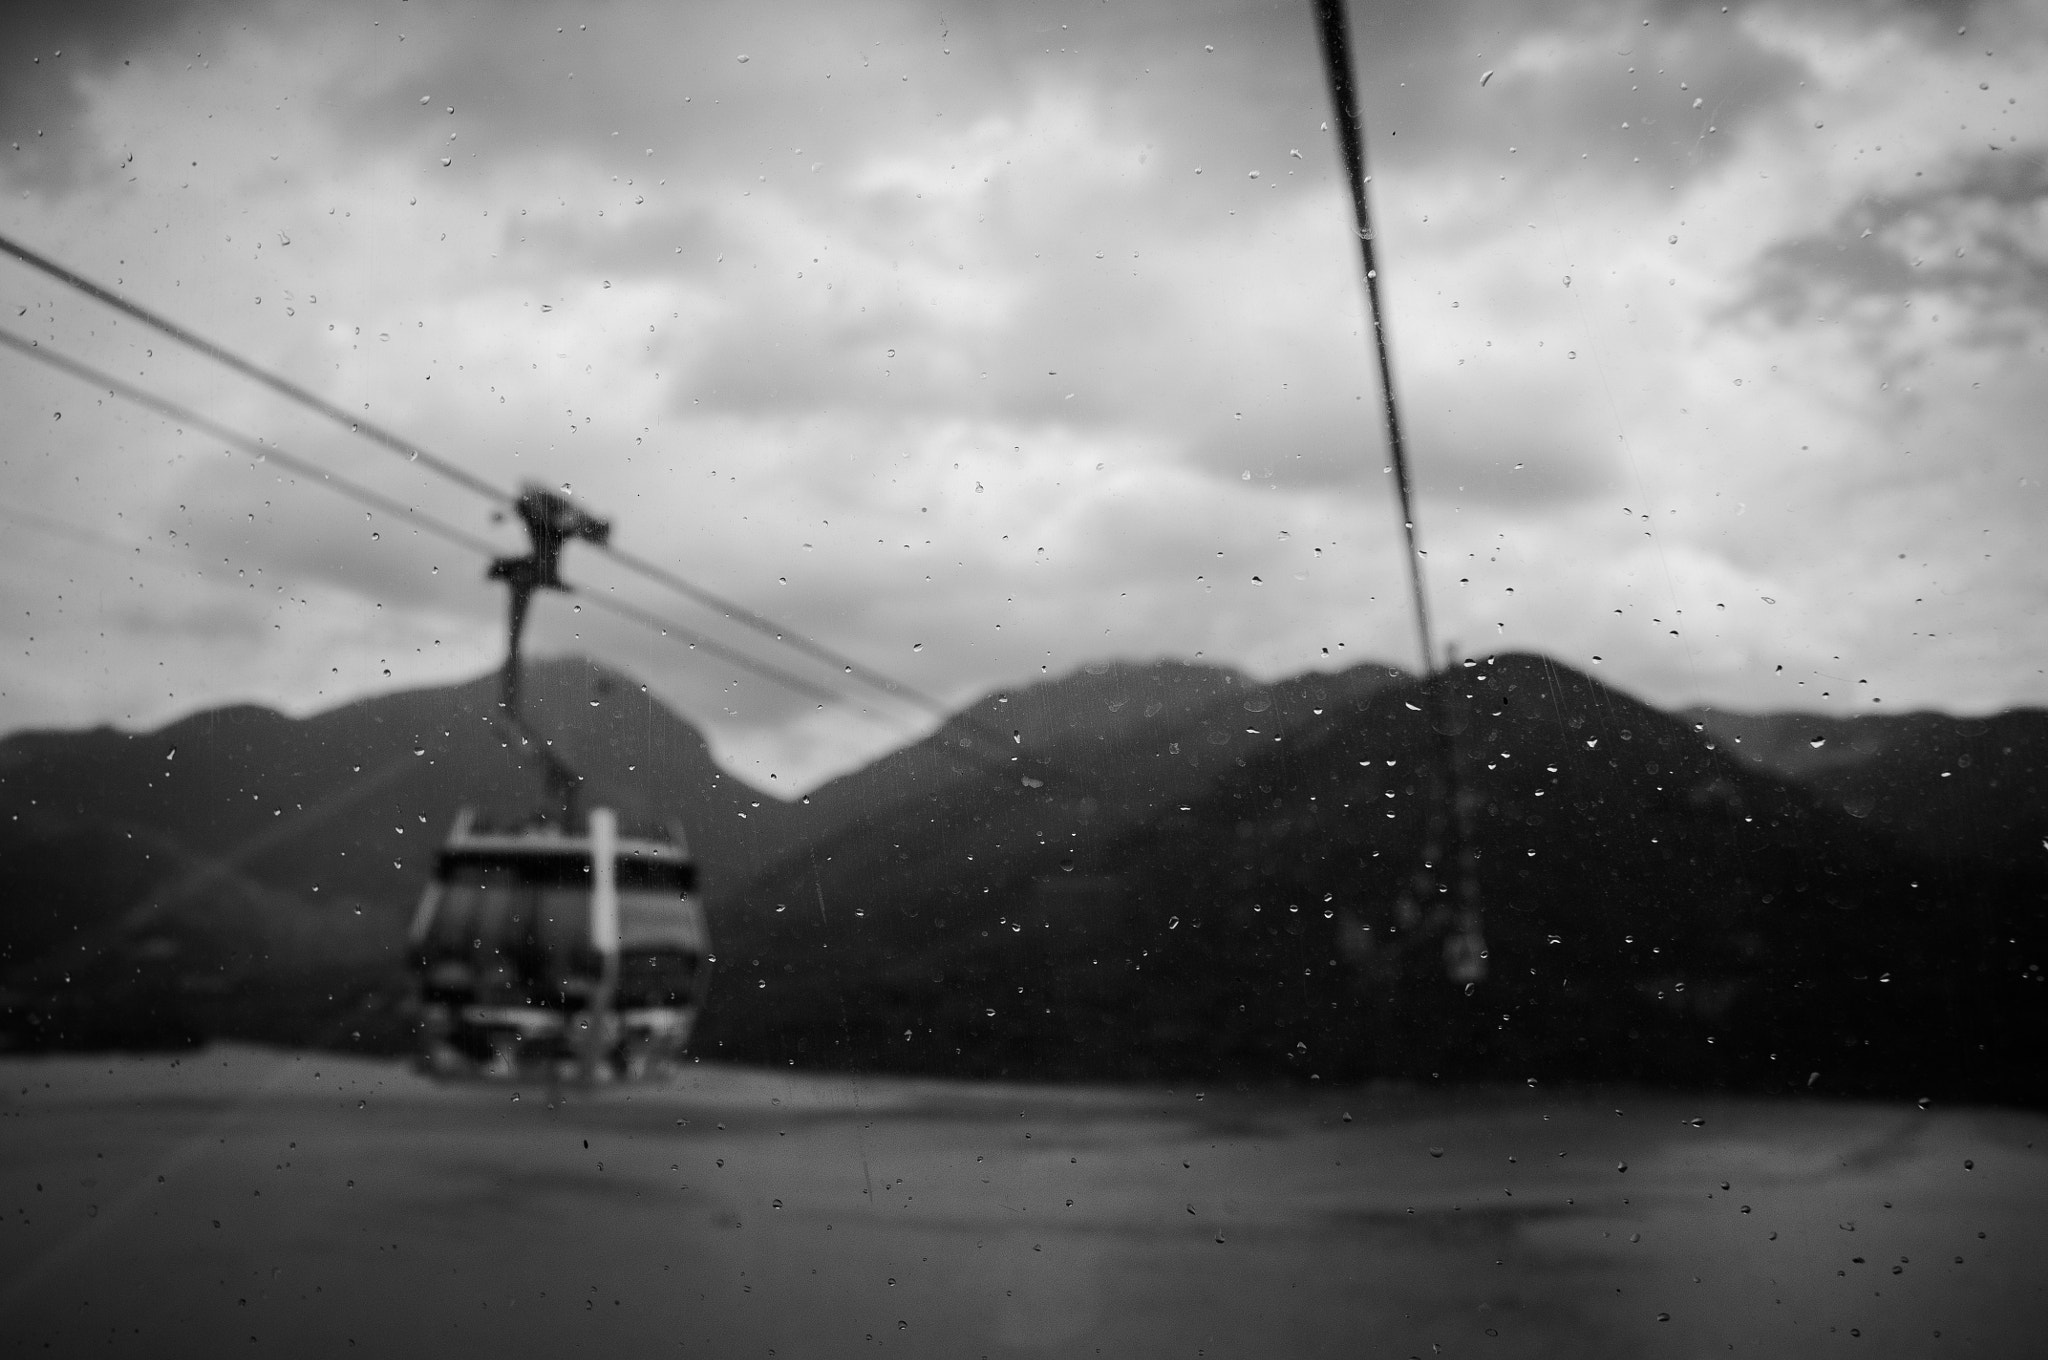 Photograph Ngong Ping 360 by Lyle Hu on 500px